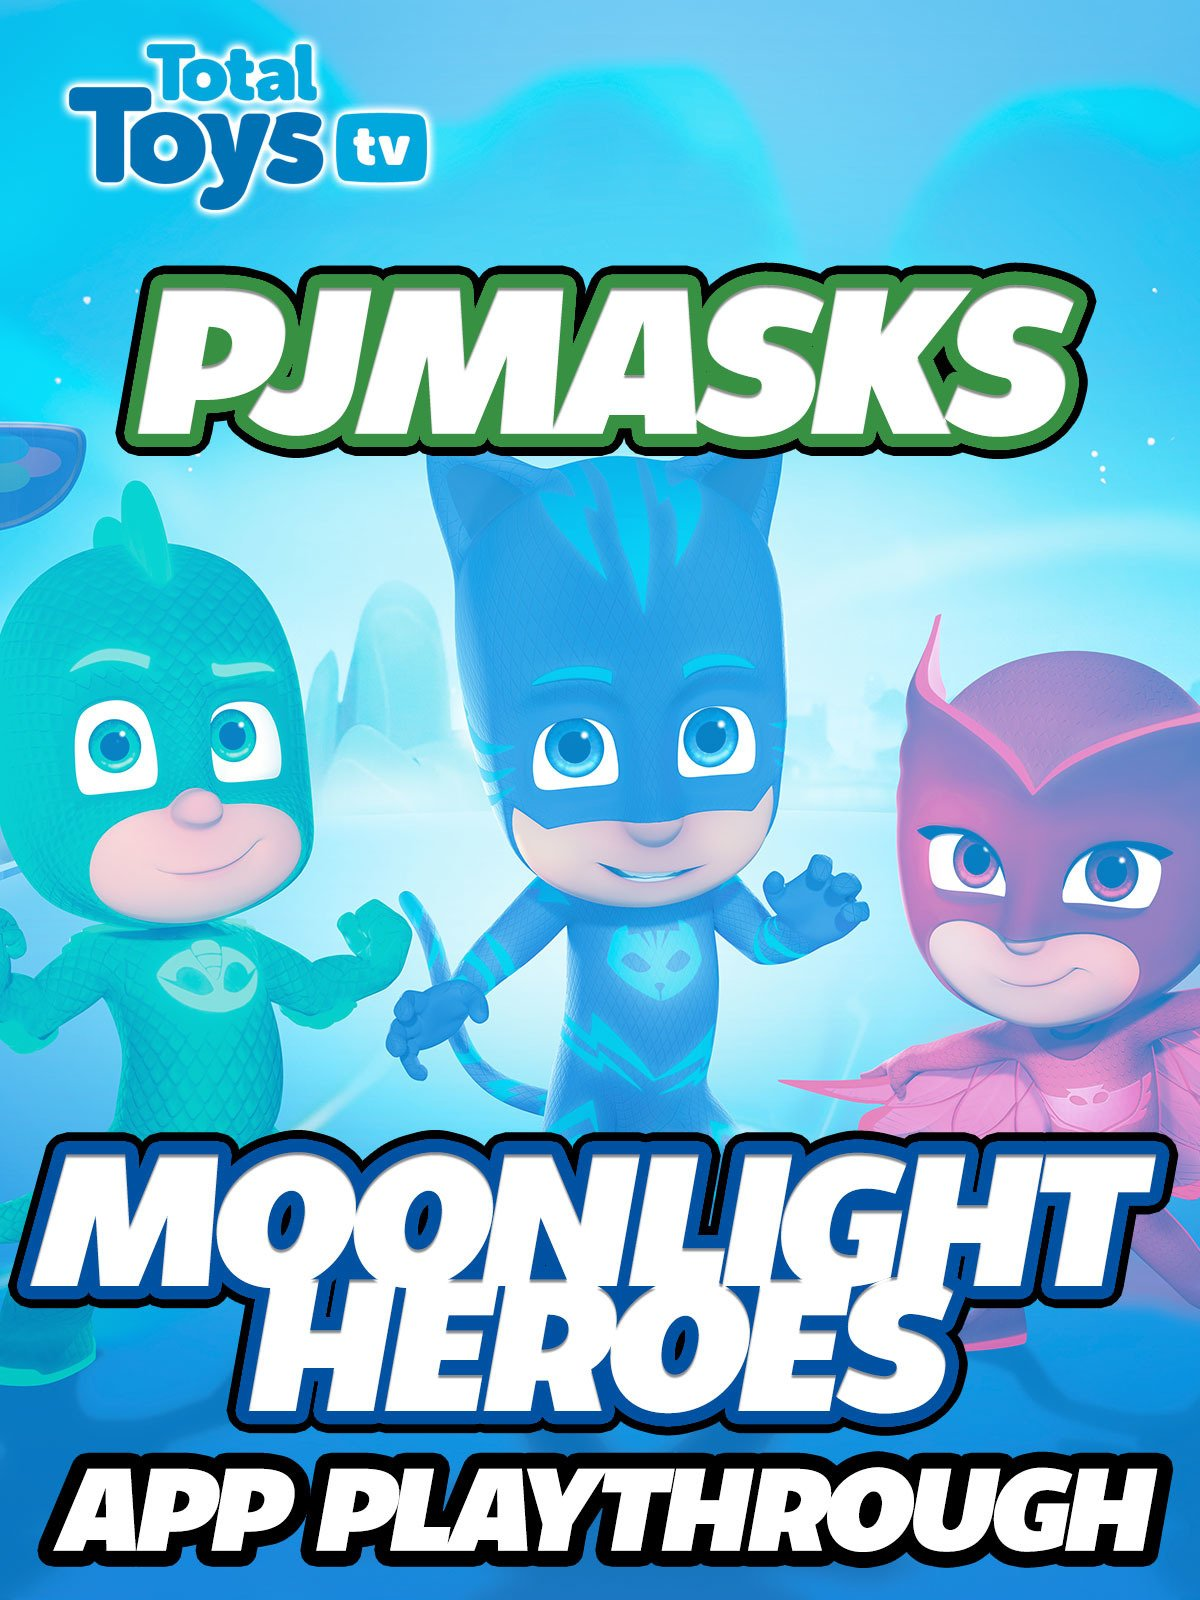 Amazon.com: Clip: PJ Masks Moonlight Heroes App Playthrough: Jason Forthofer